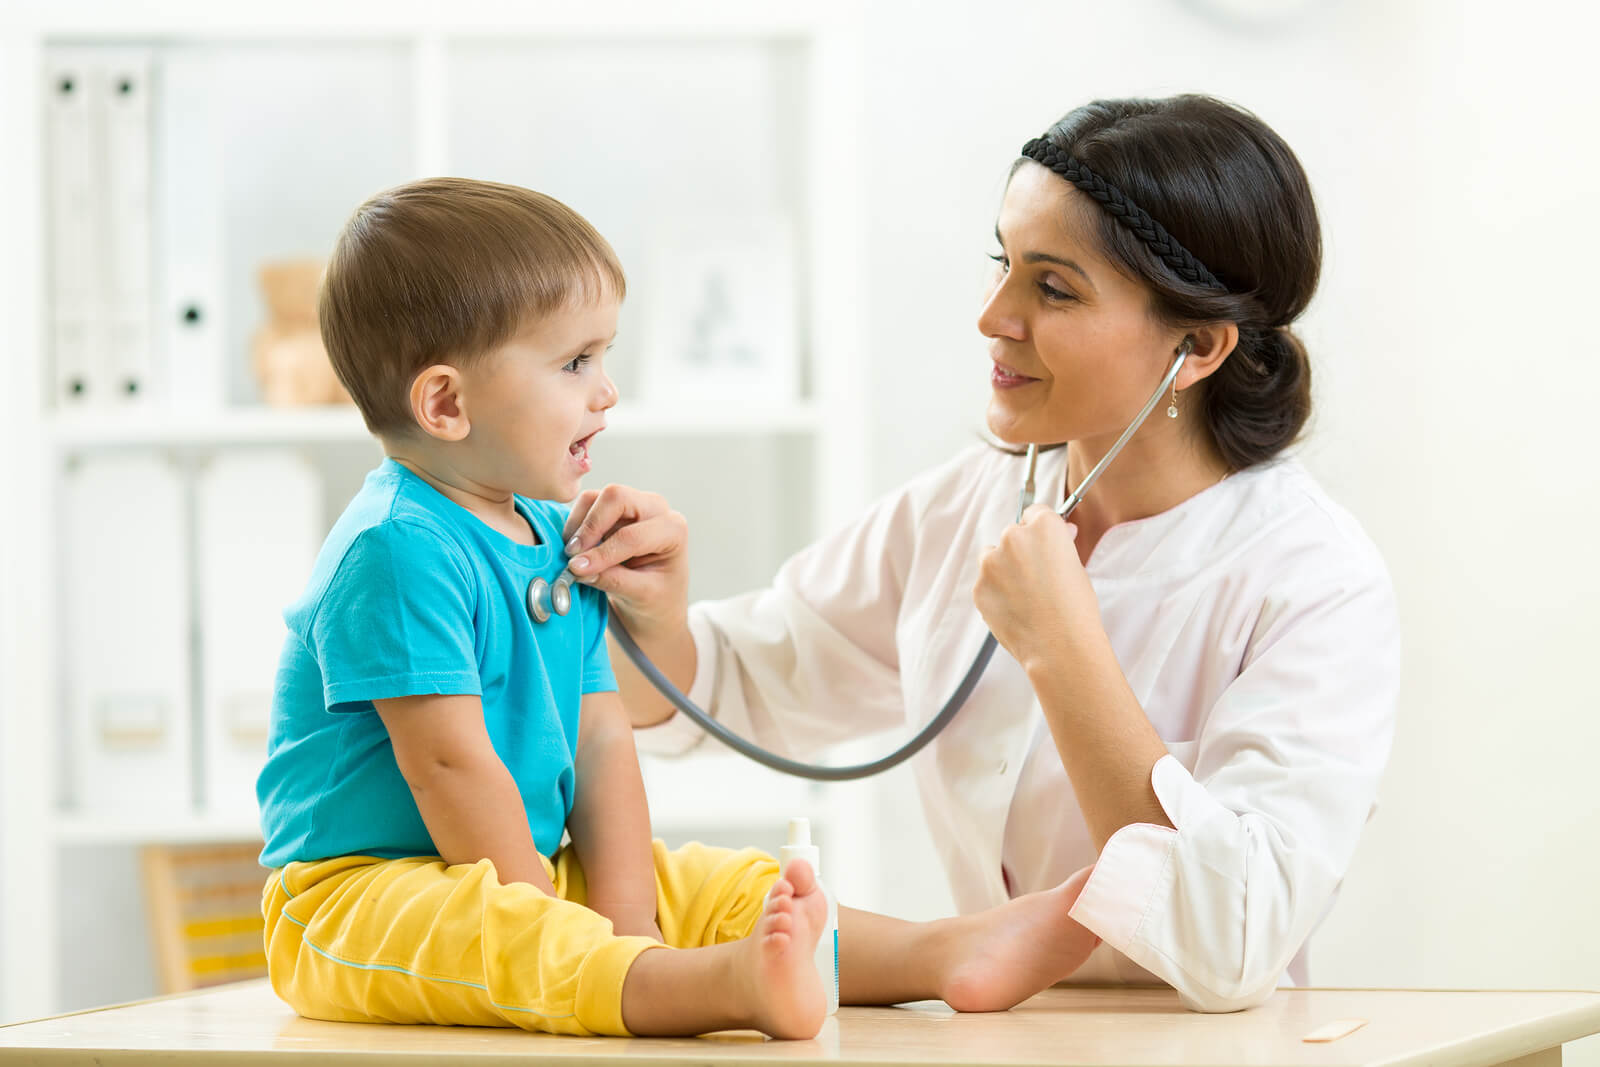 Happy Mother's Day to All Dr. Moms - PlushCare